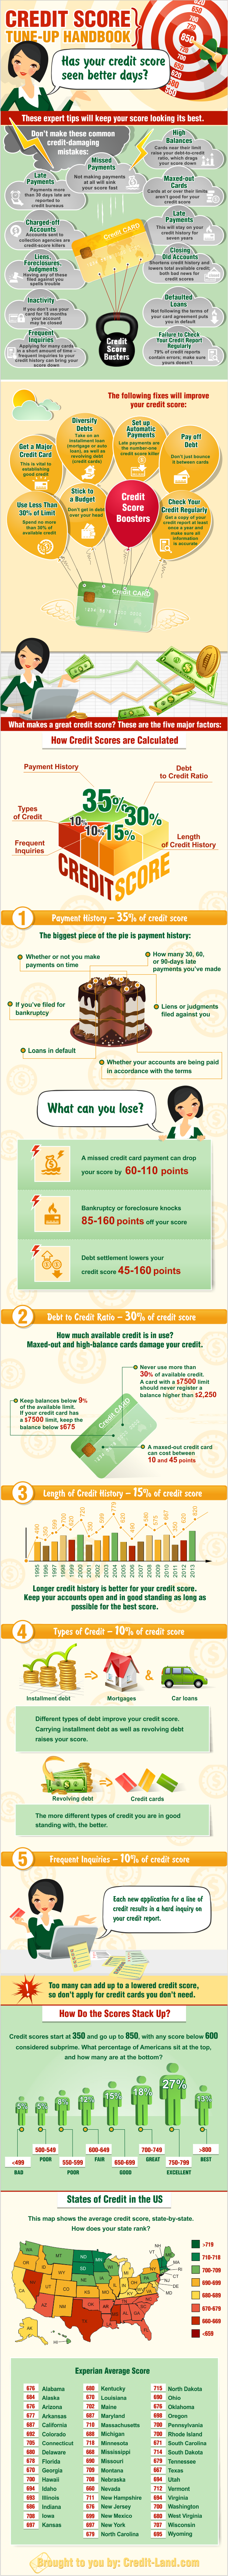 Infographic - Credit Score Makeover: How to Get a High Score from the Credit Bureaus